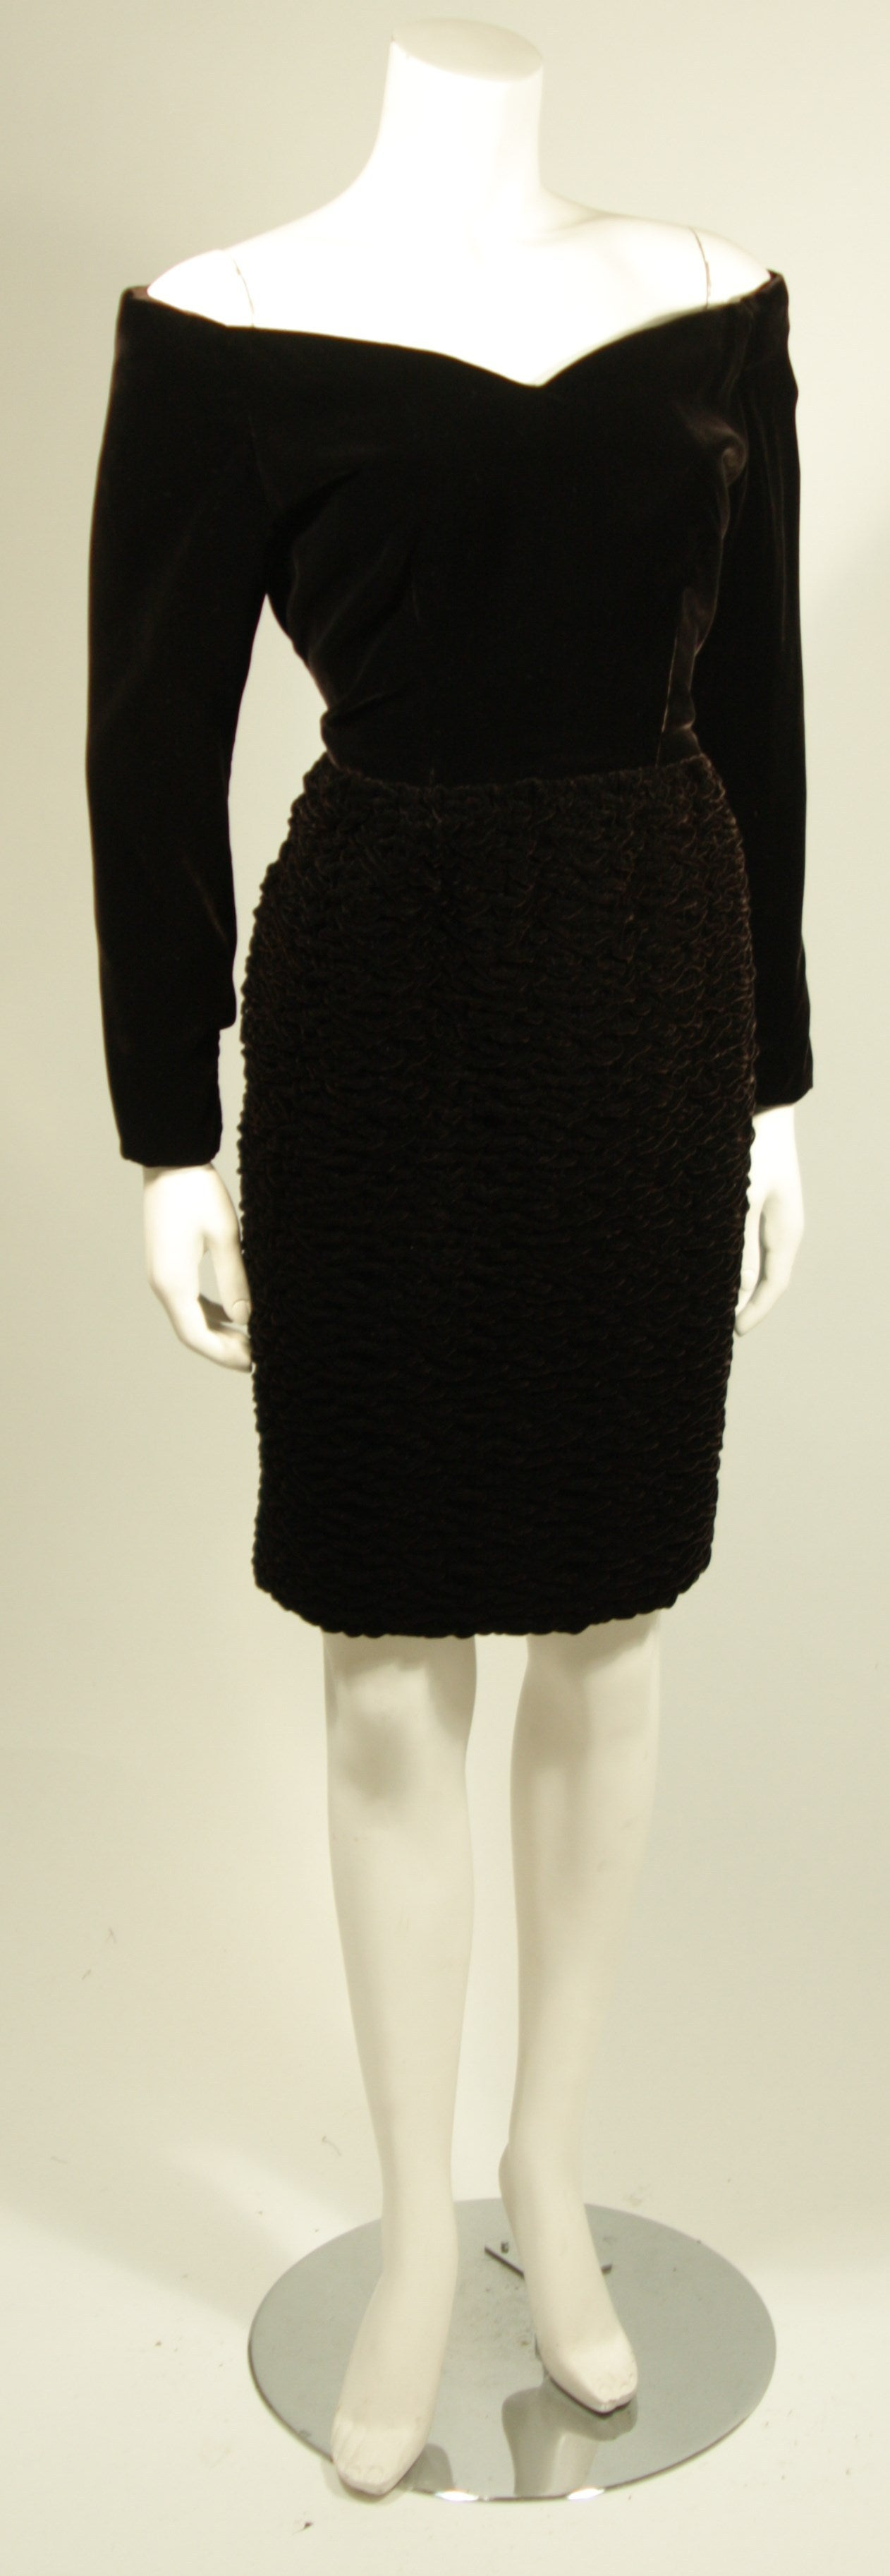 Oscar De La Renta Brown Velvet Cocktail Dress with Ruched Skirt Size 6 3